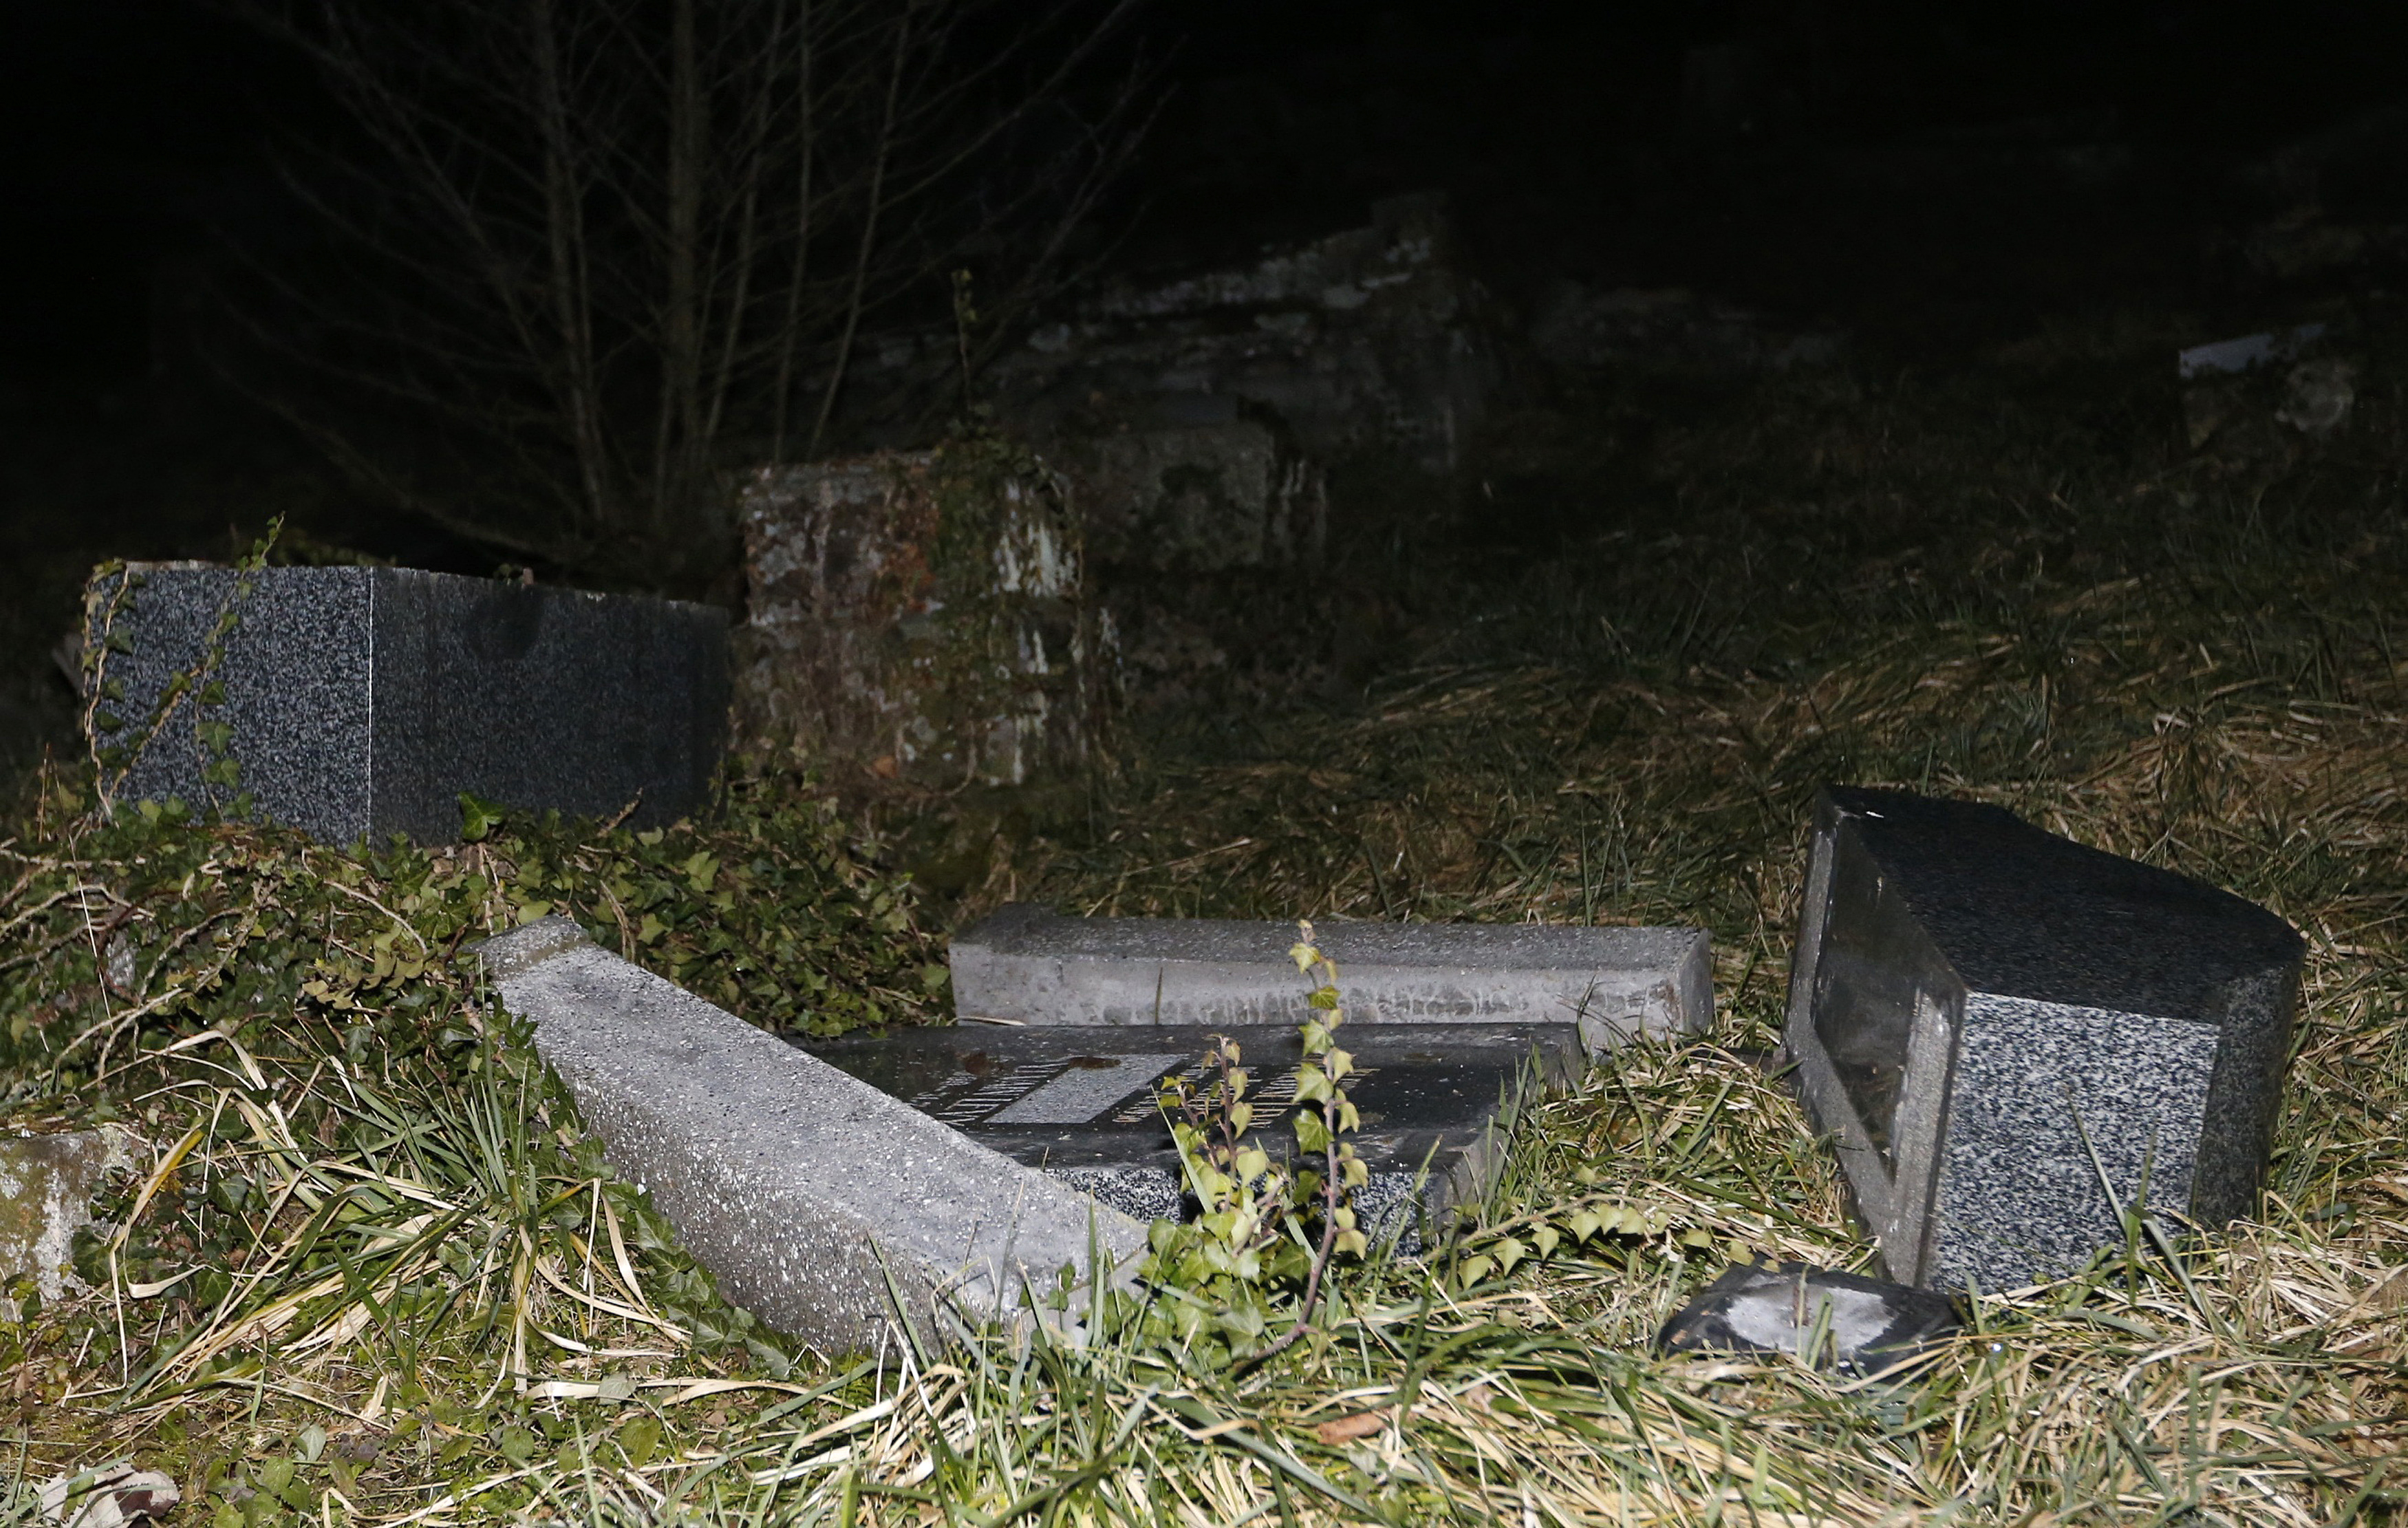 Desecrated tombstones are seen at Sarre-Union Jewish cemetery in eastern France on Feb. 15, 2015